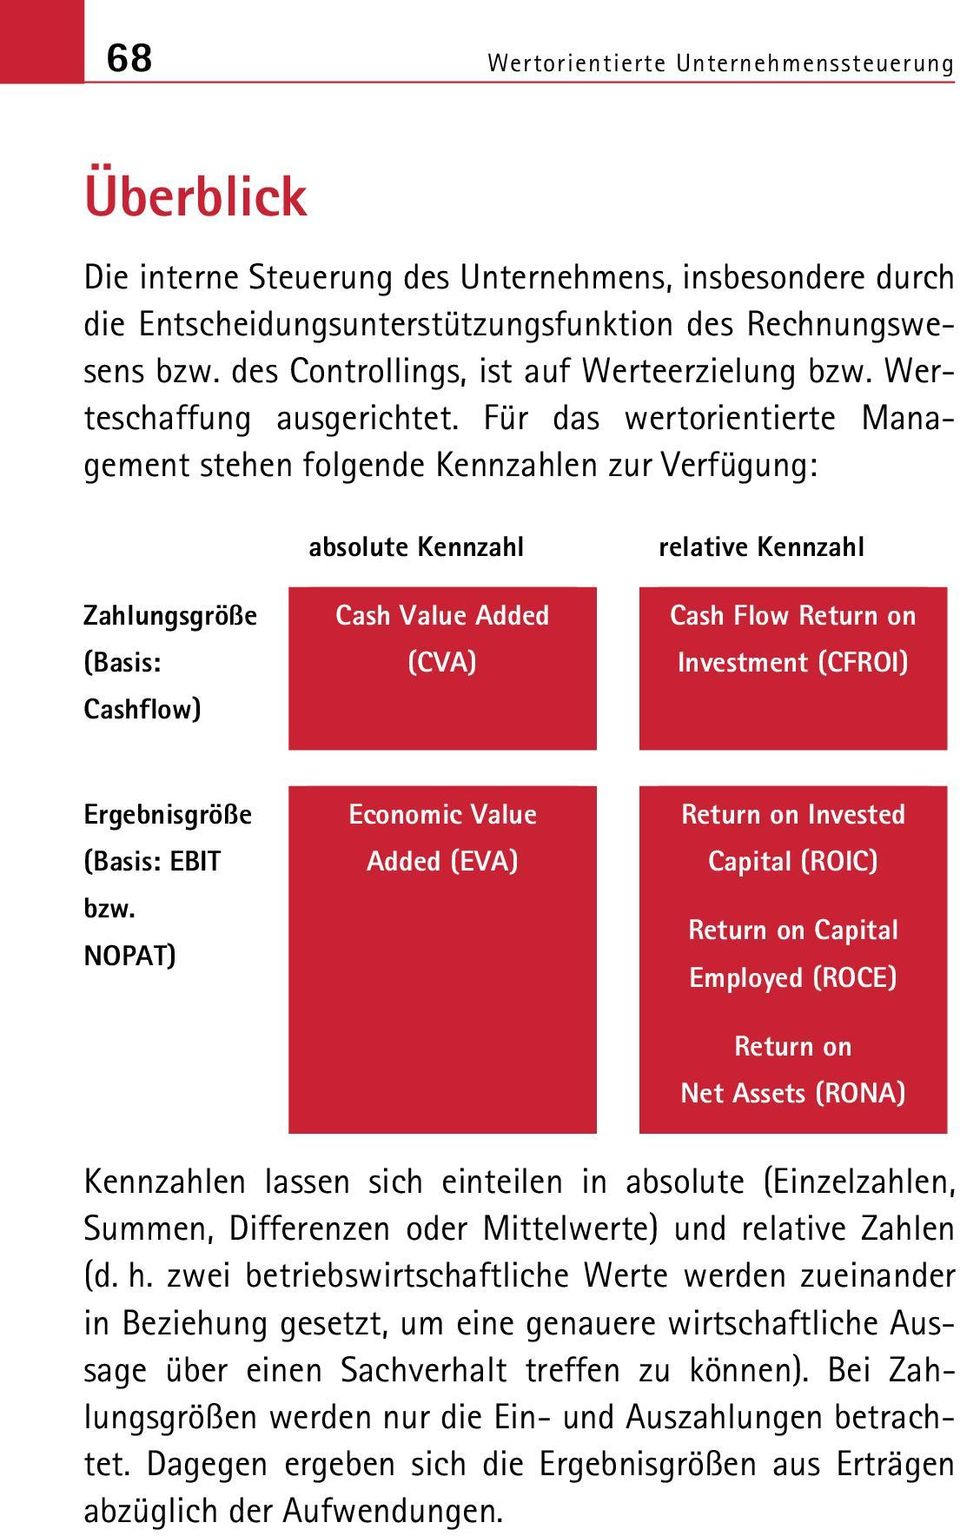 Für das wertorientierte Management stehen folgende Kennzahlen zur Verfügung: Zahlungsgröße (Basis: Cashflow) absolute Kennzahl Cash Value Added (CVA) relative Kennzahl Cash Flow Return on Investment